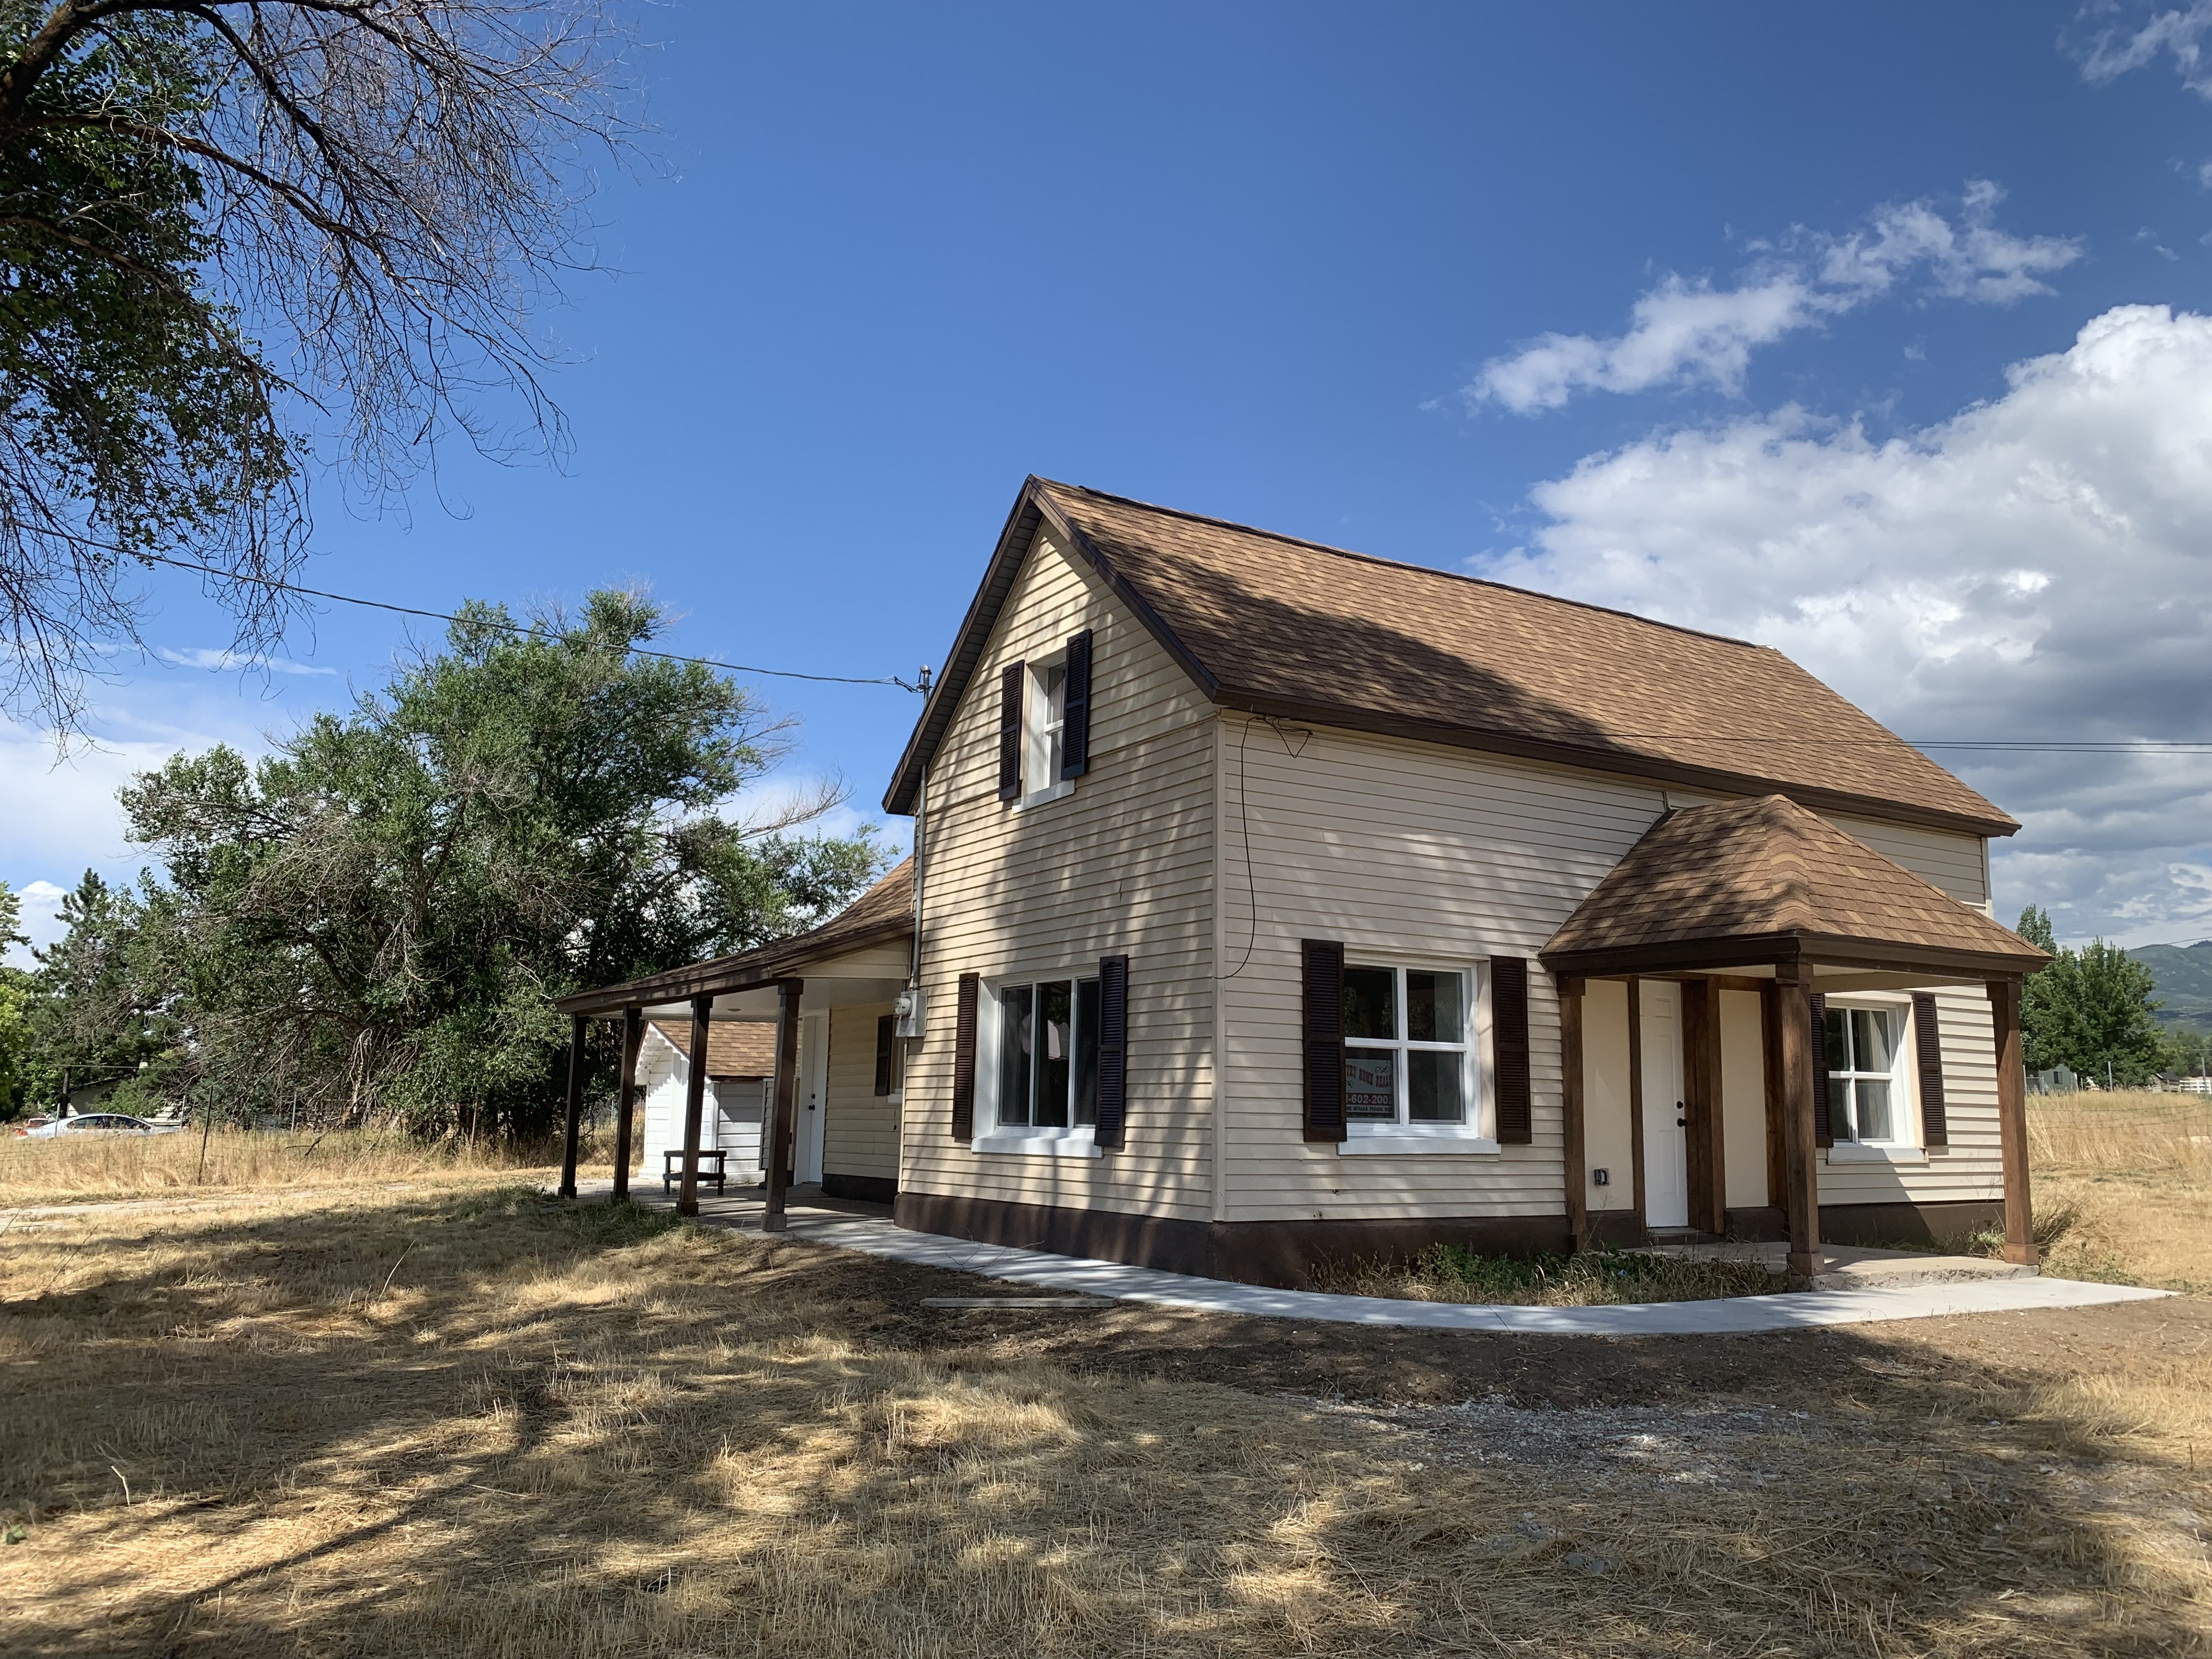 Old home charm, new home feel. 3 bed, 3 bath, all new inside. 315 E 300 S. Mt Pleasant.